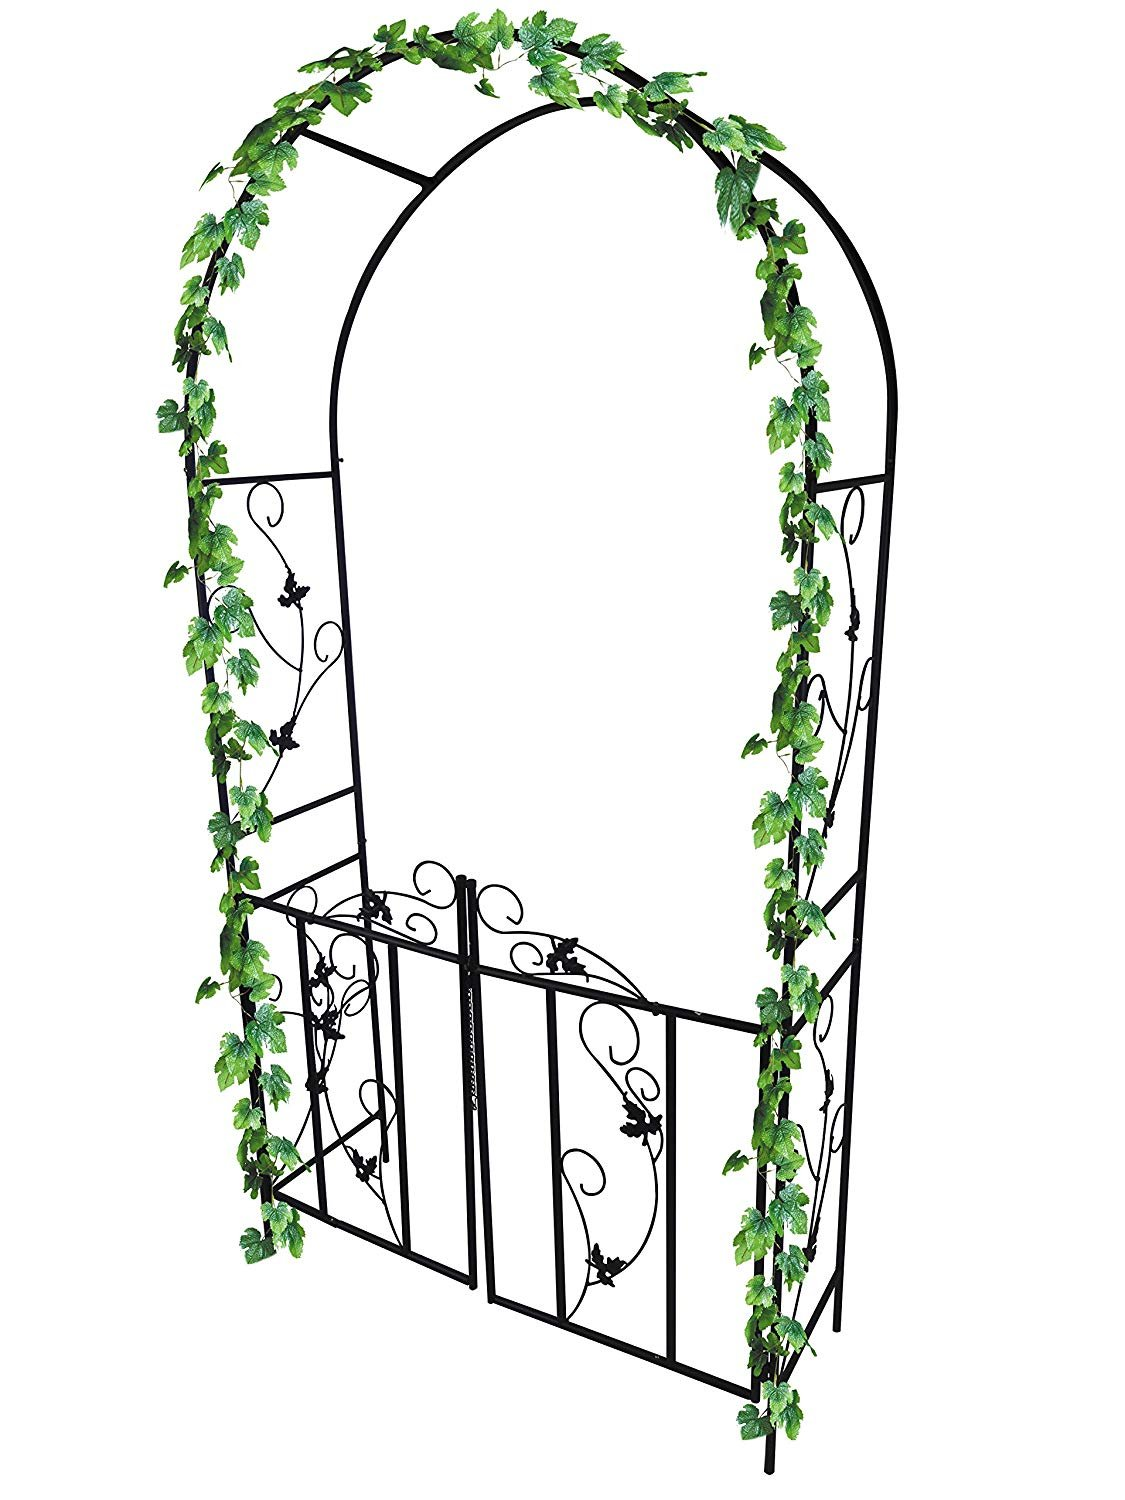 garden mile Large 2.2m Decorative Black Metal Garden Arch With Double Gates Heavy Duty Strong Tubular Arbour For Roses Climbing Plants Support Pergola Archway Garden Decoration Garden Mile®